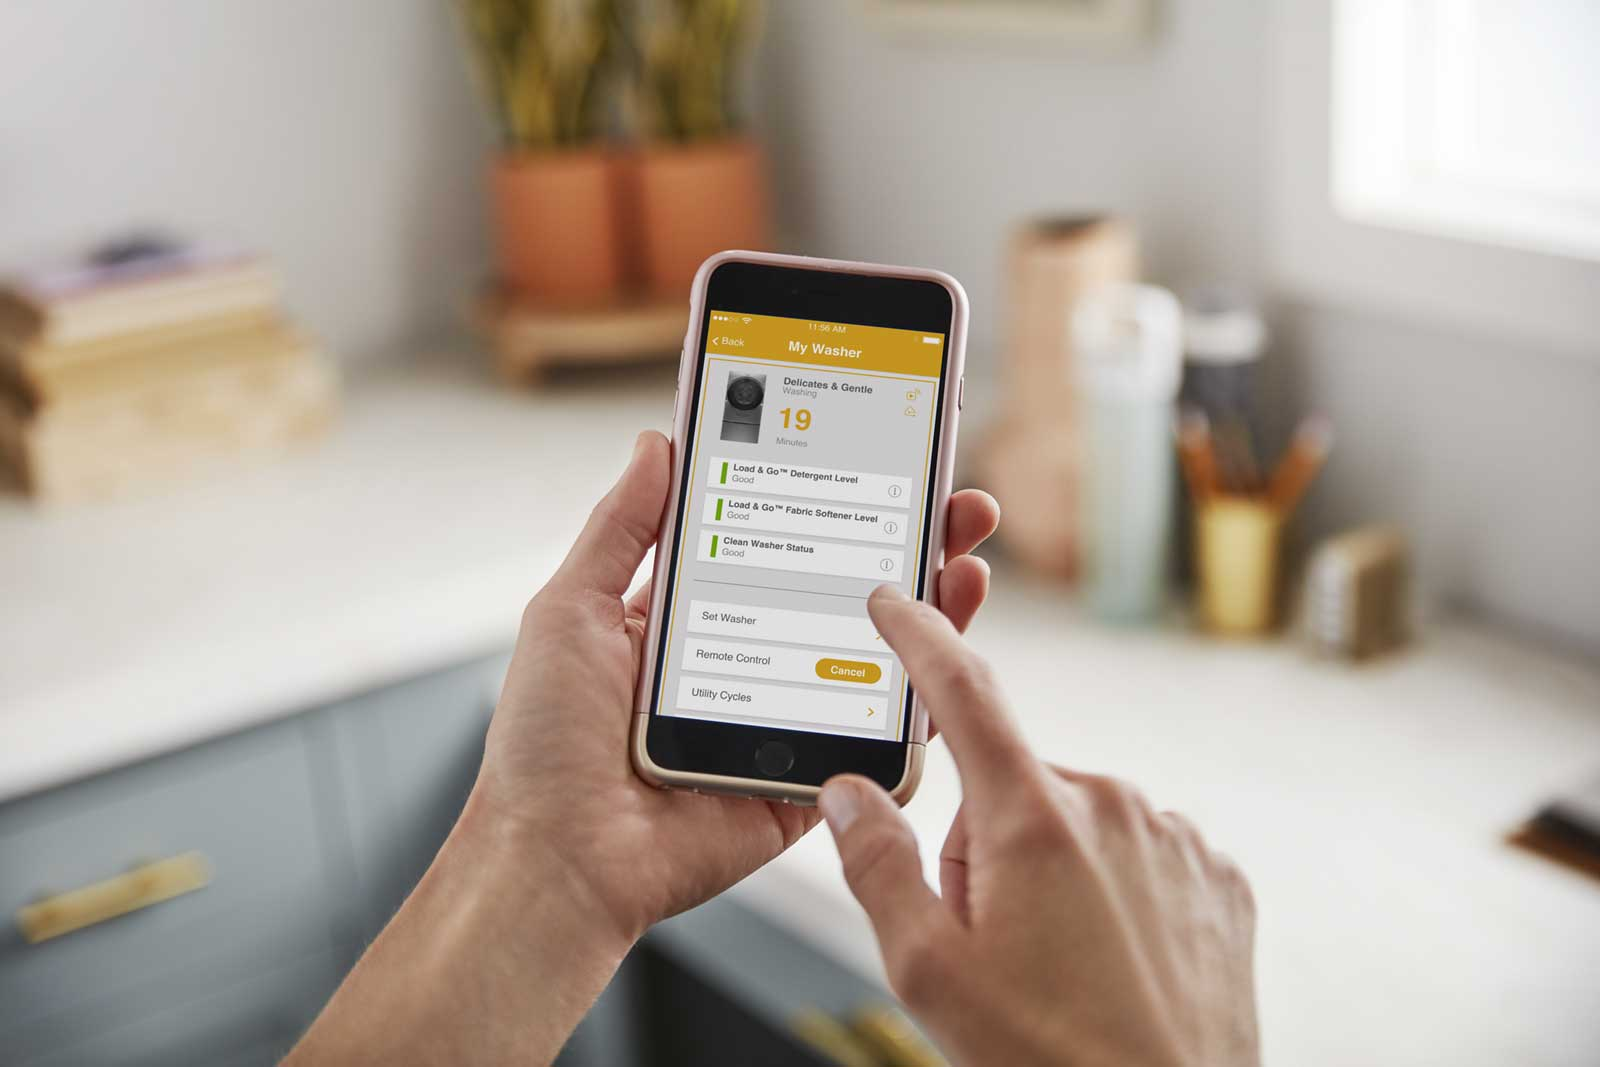 Busy families can have complete control of their Smart Front Load Pair using the Whirlpool® app via a smartphone or tablet, such as starting or scheduling a laundry cycle, even when away from home.